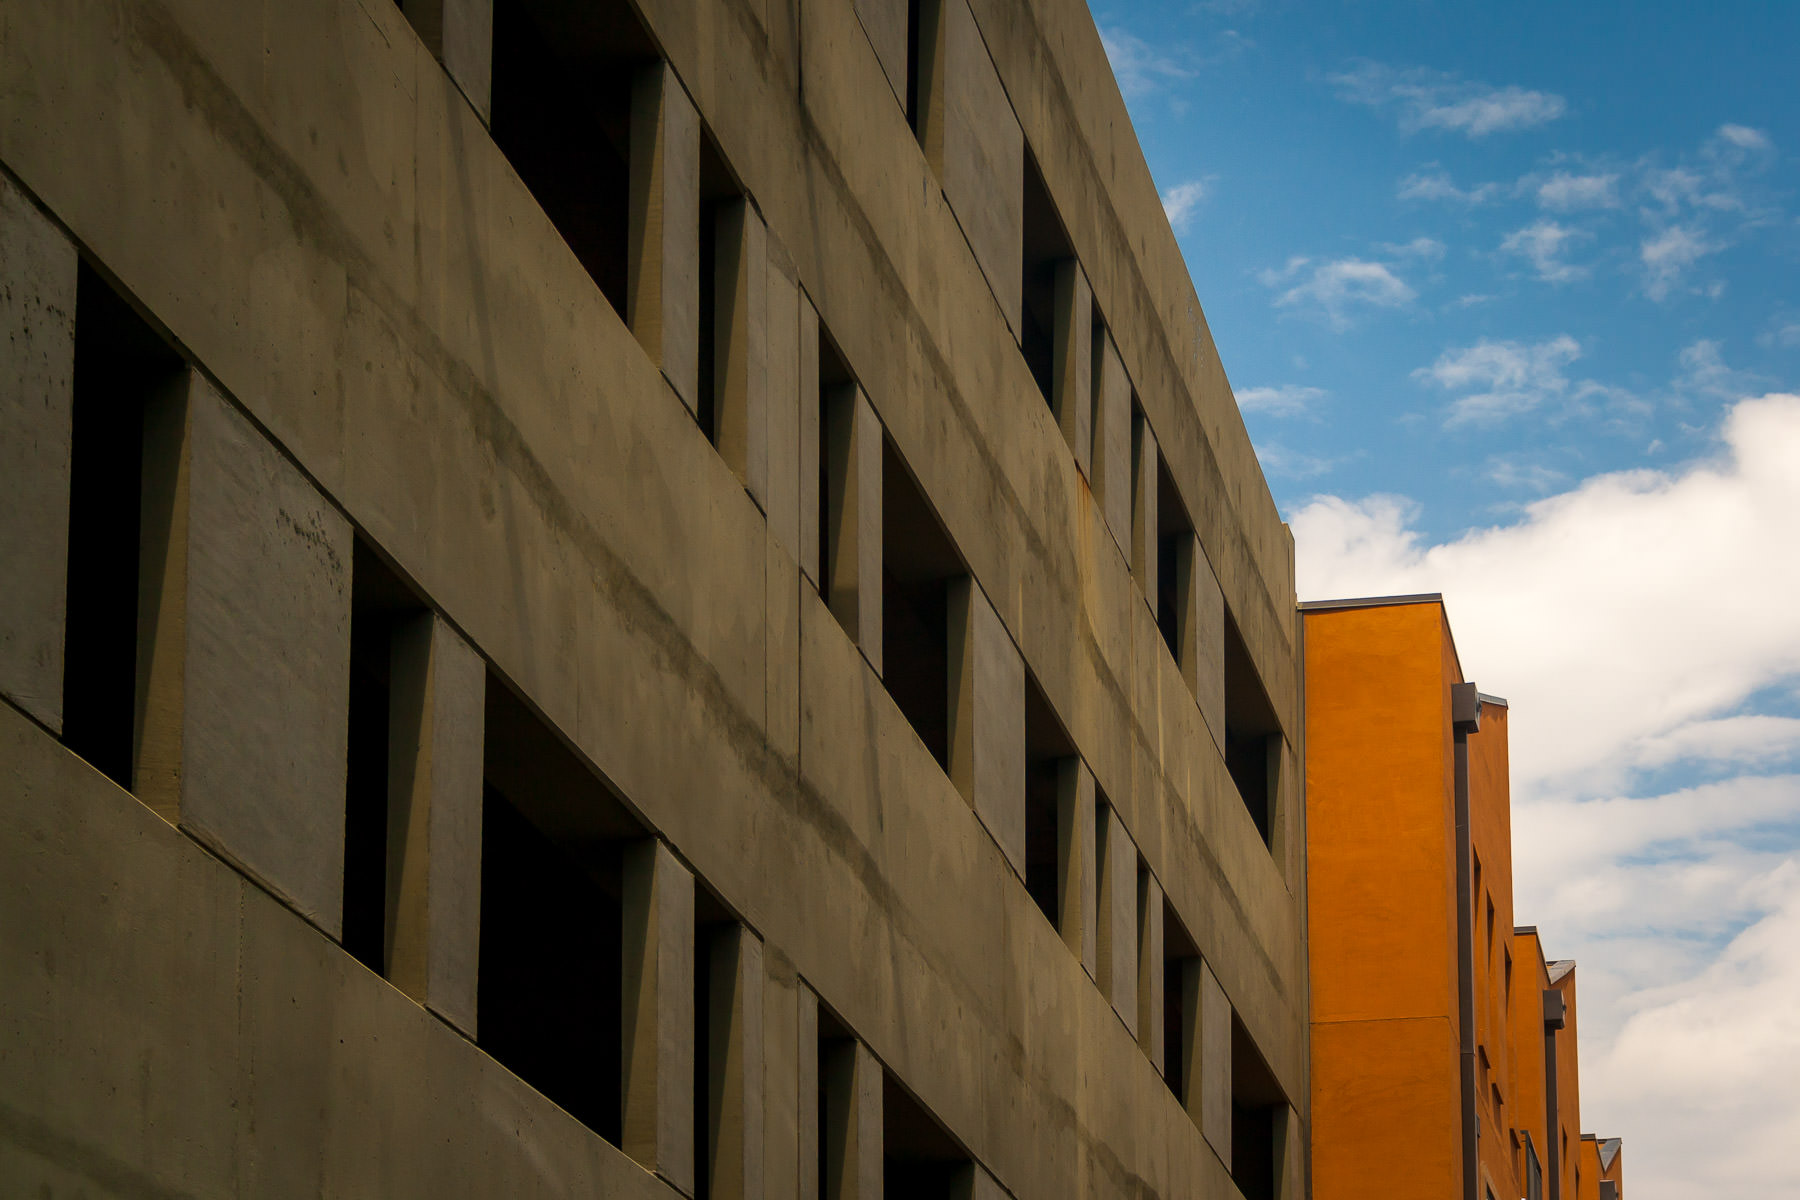 One of the parking garages at Eastside Village in downtown Plano, Texas, next to a bright orange residential building.